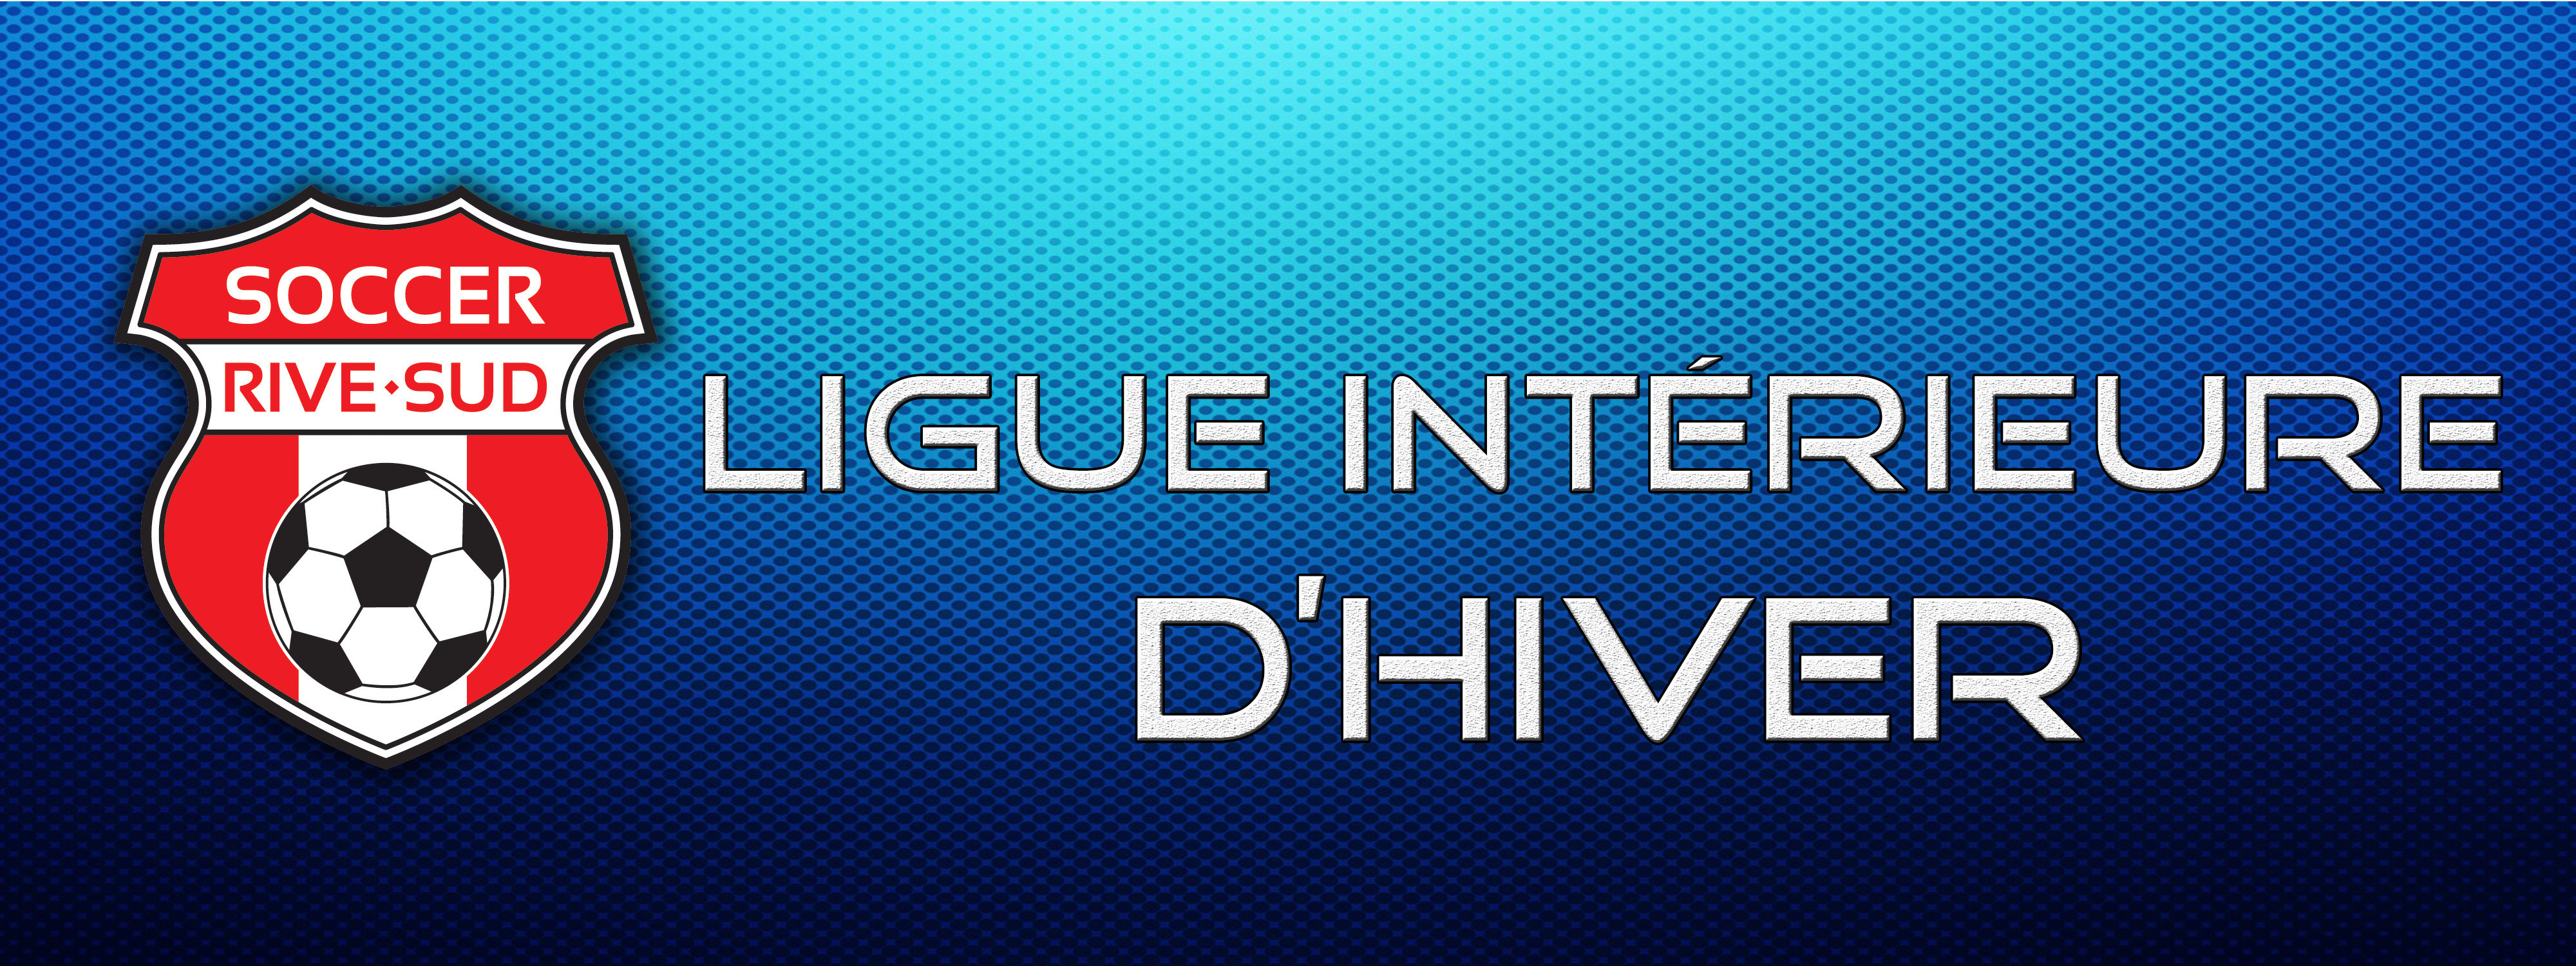 Ligue int rieure d 39 hiver association r gionale de soccer for Design d interieur rive sud